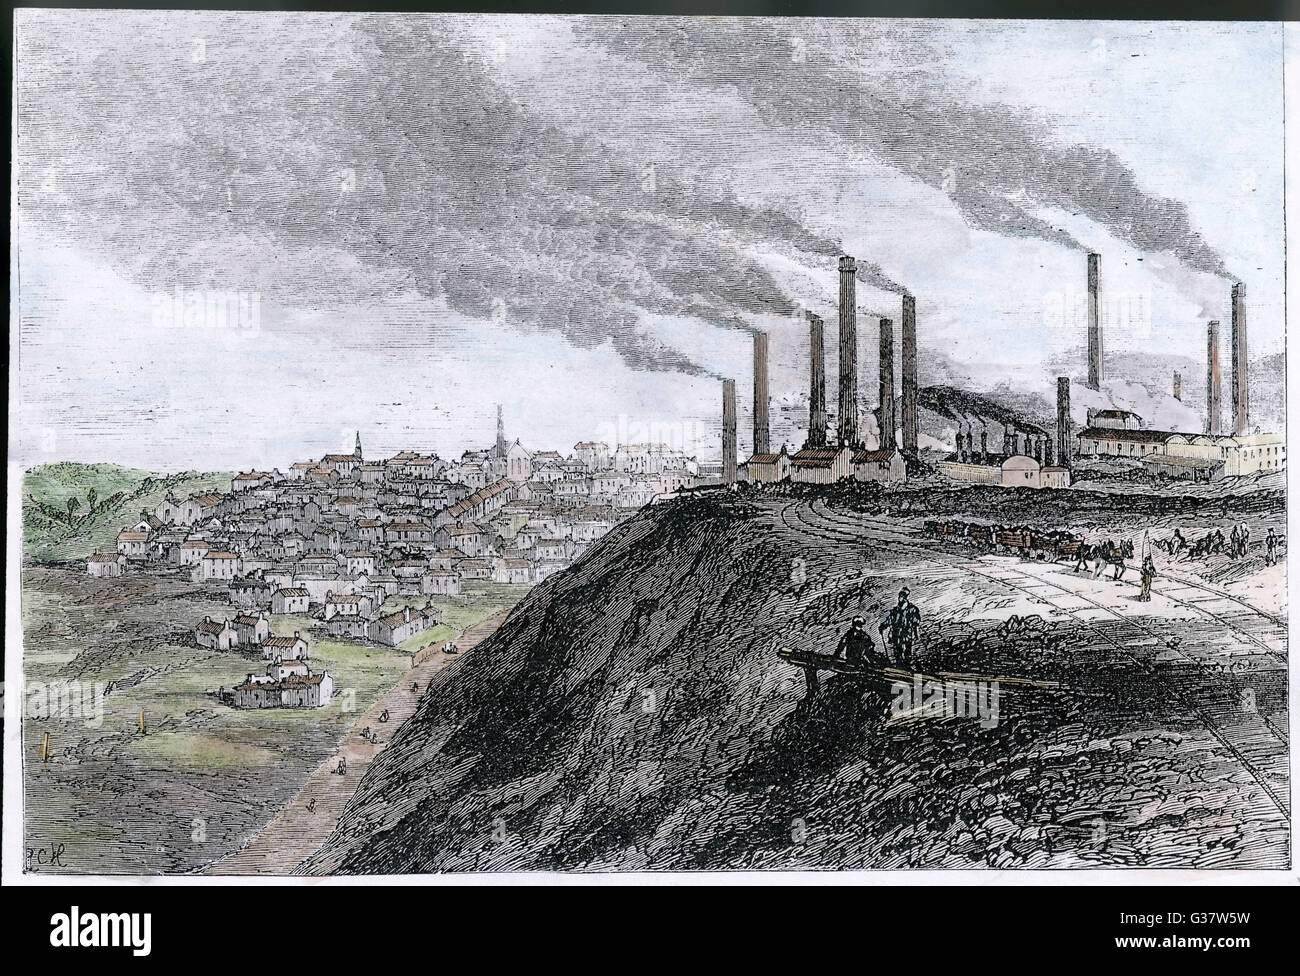 Factory smoke at Dowlais, South Wales         Date: 1875 - Stock Image